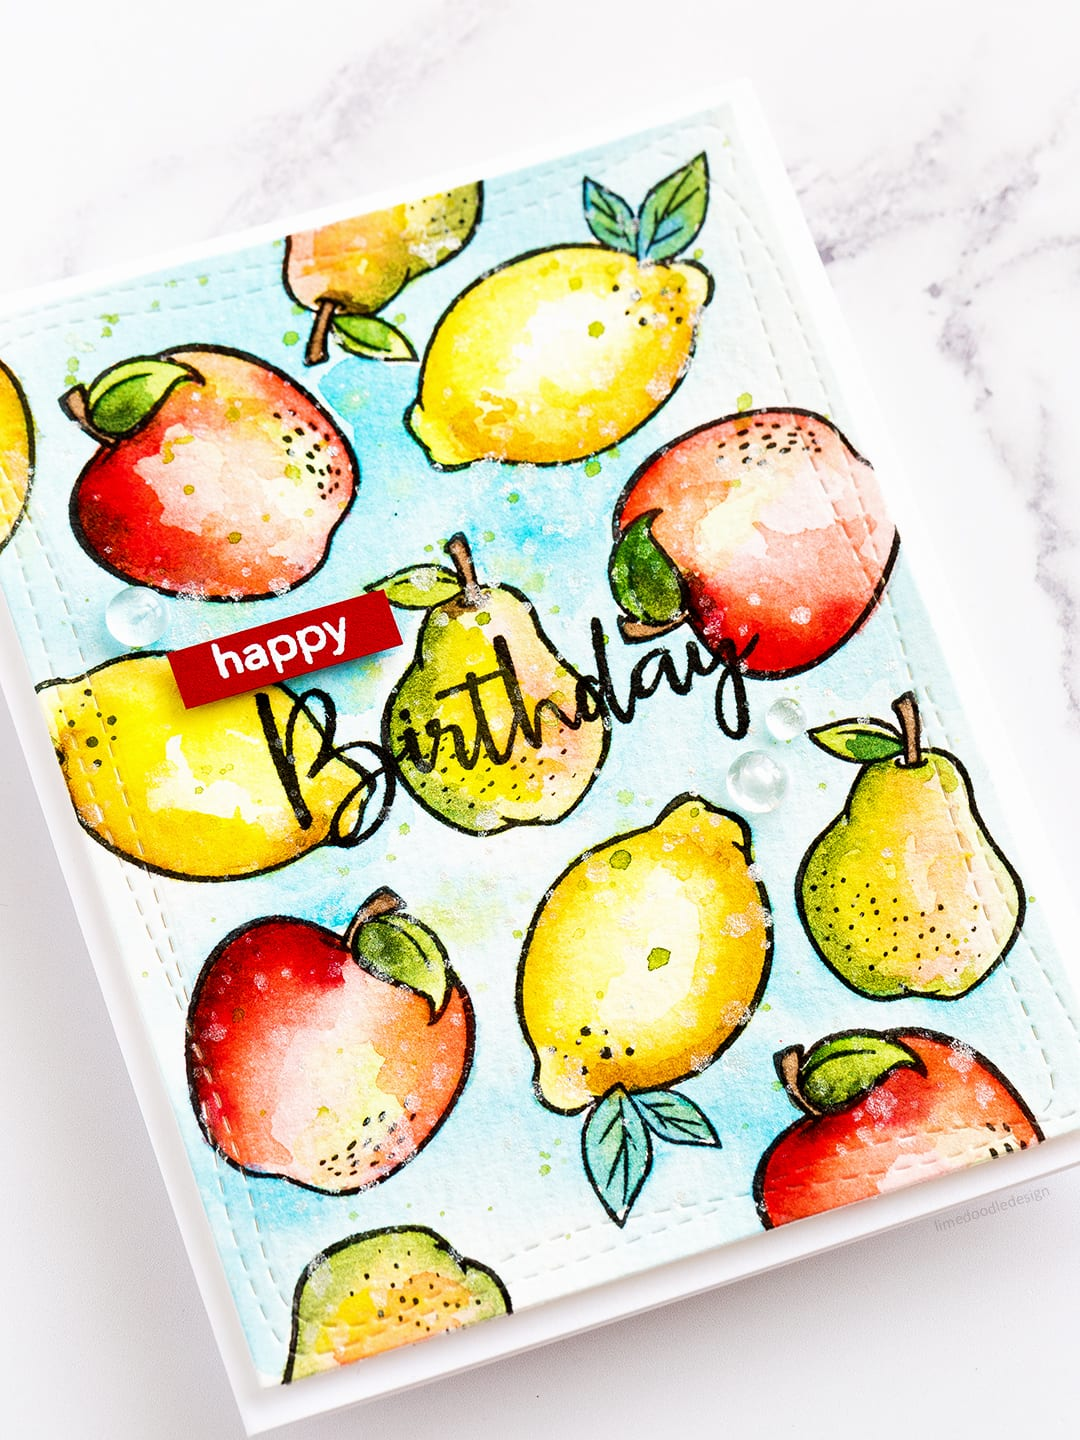 Supplies two ways with the Dancing Fruits set - part of the new release from Simon Says Stamp. Find out more about this card by clicking on the following link: http://limedoodledesign.com/2017/06/supplies-two-ways-simon-says-stamp-new-release/